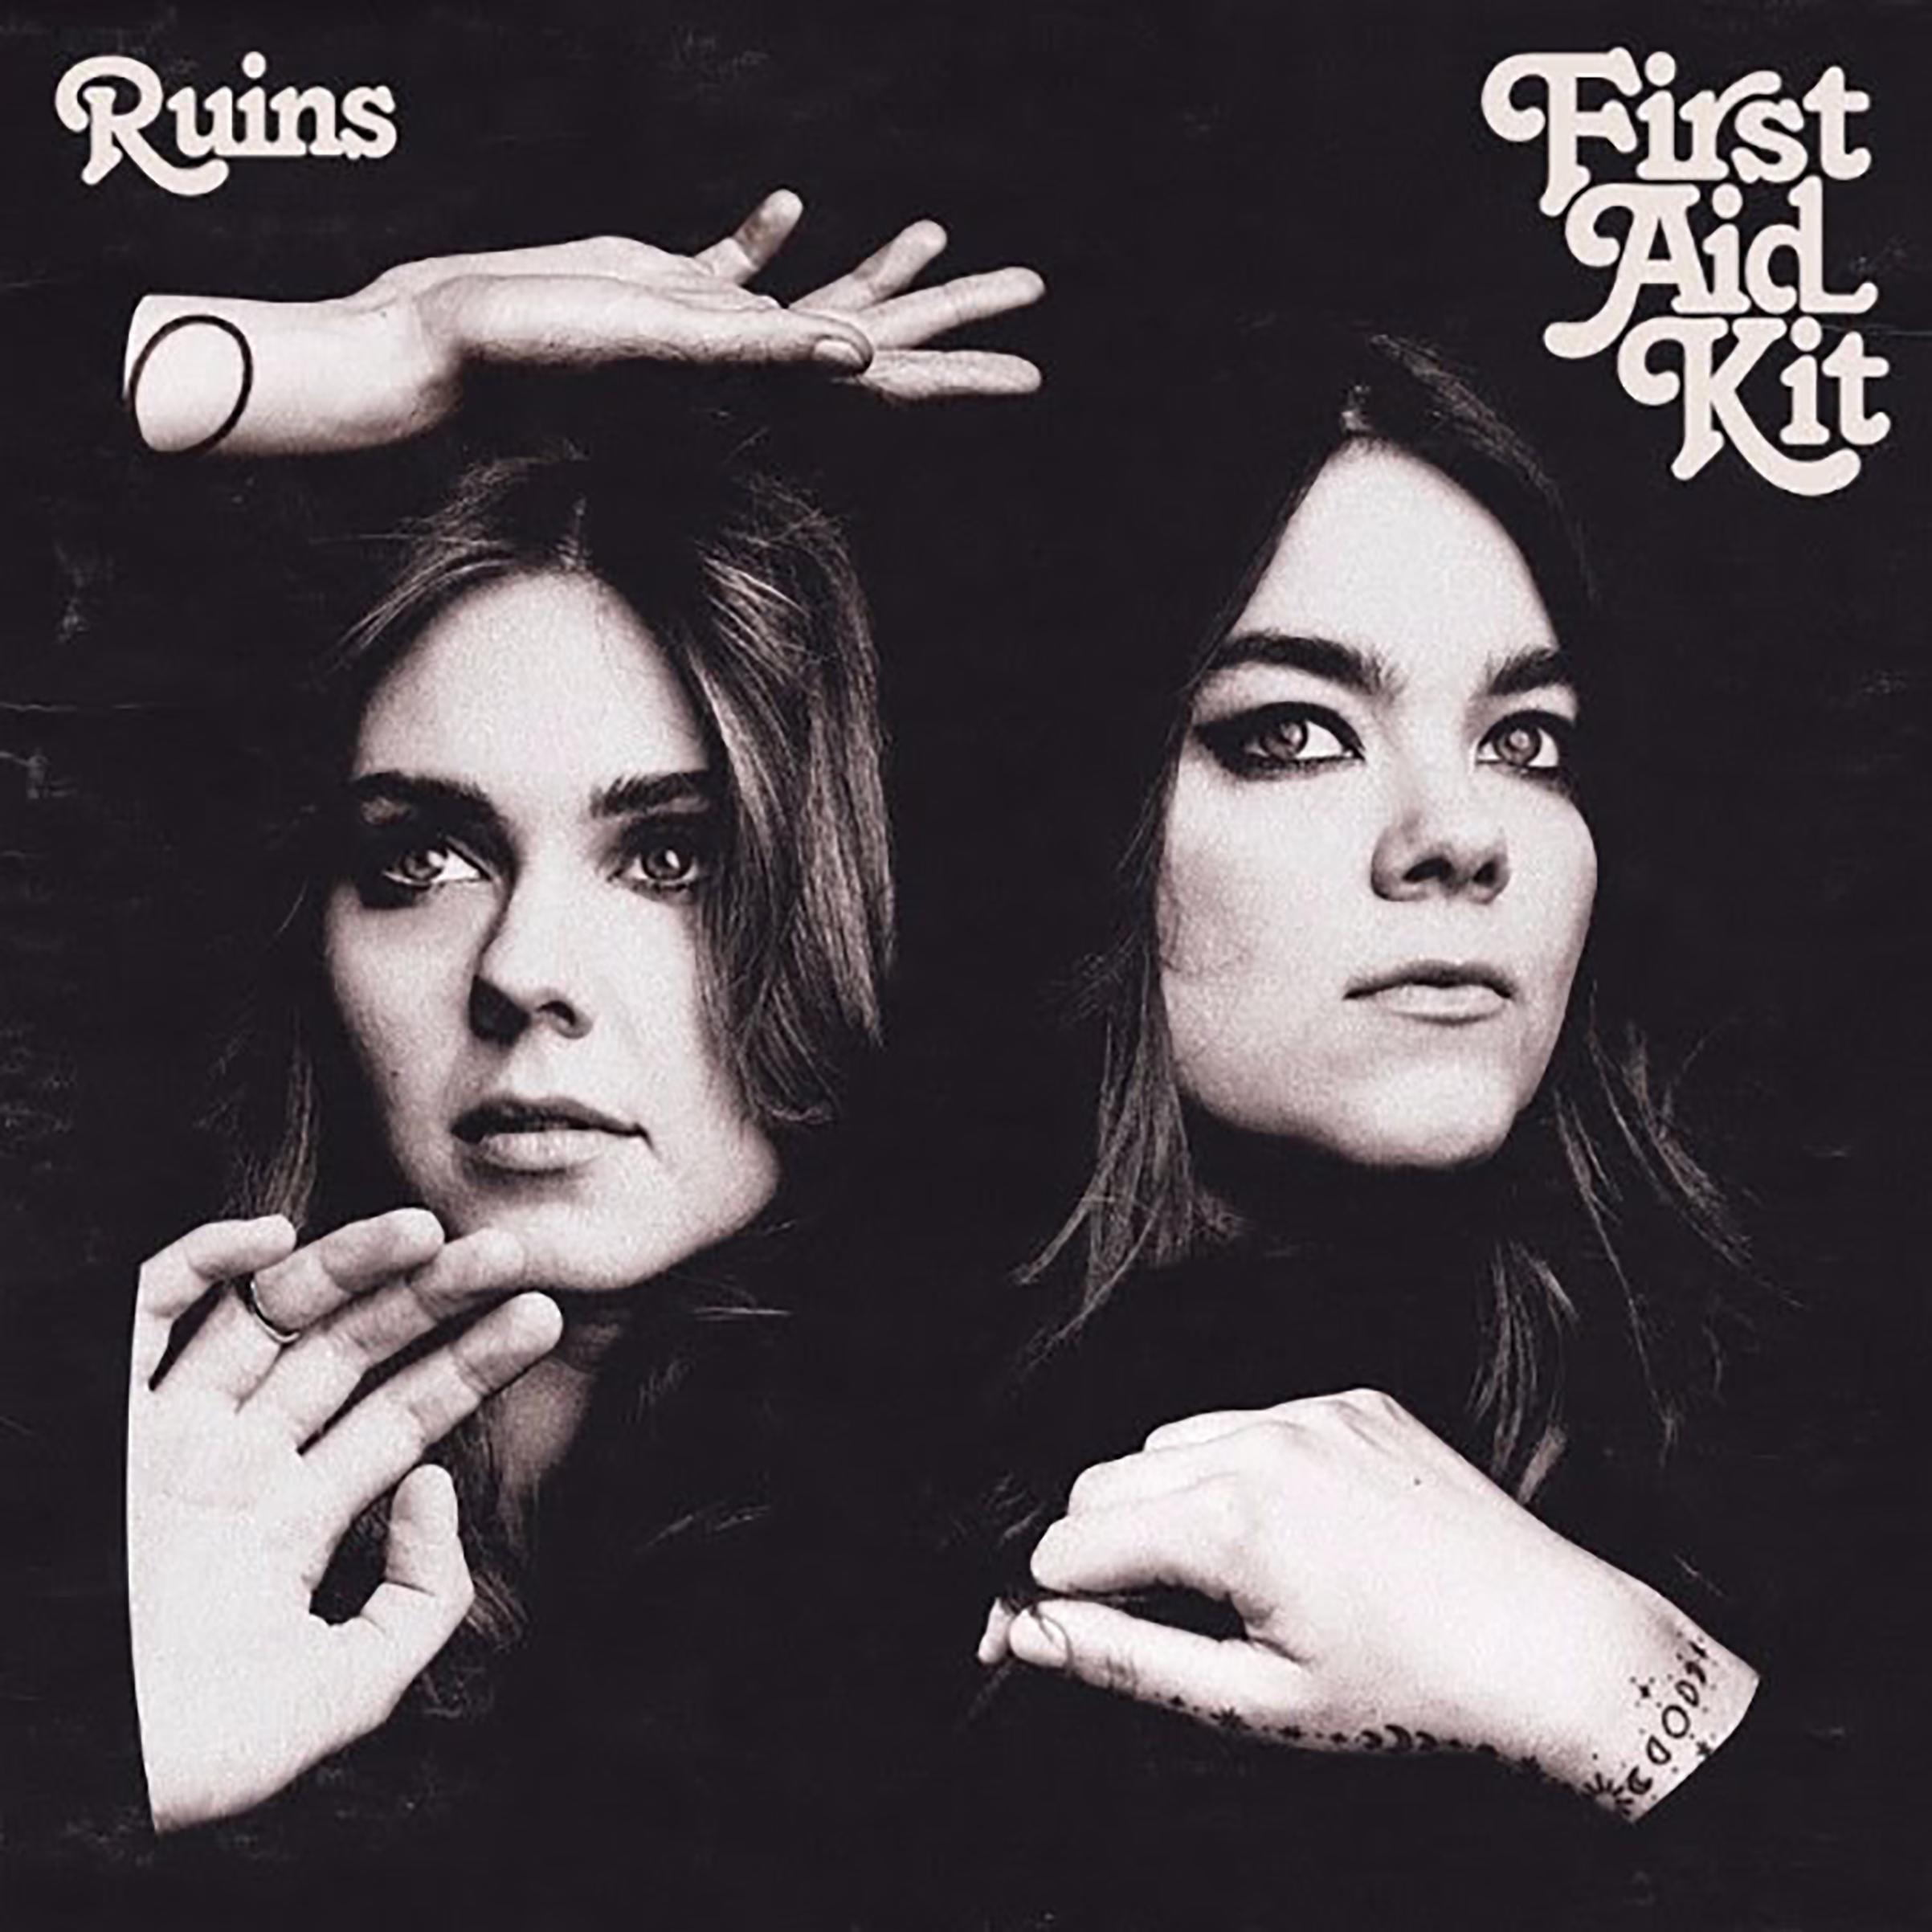 In 2017 First Aid Kit played two tribute shows to Leonard Cohen to sold-out crowds in their native Stockholm